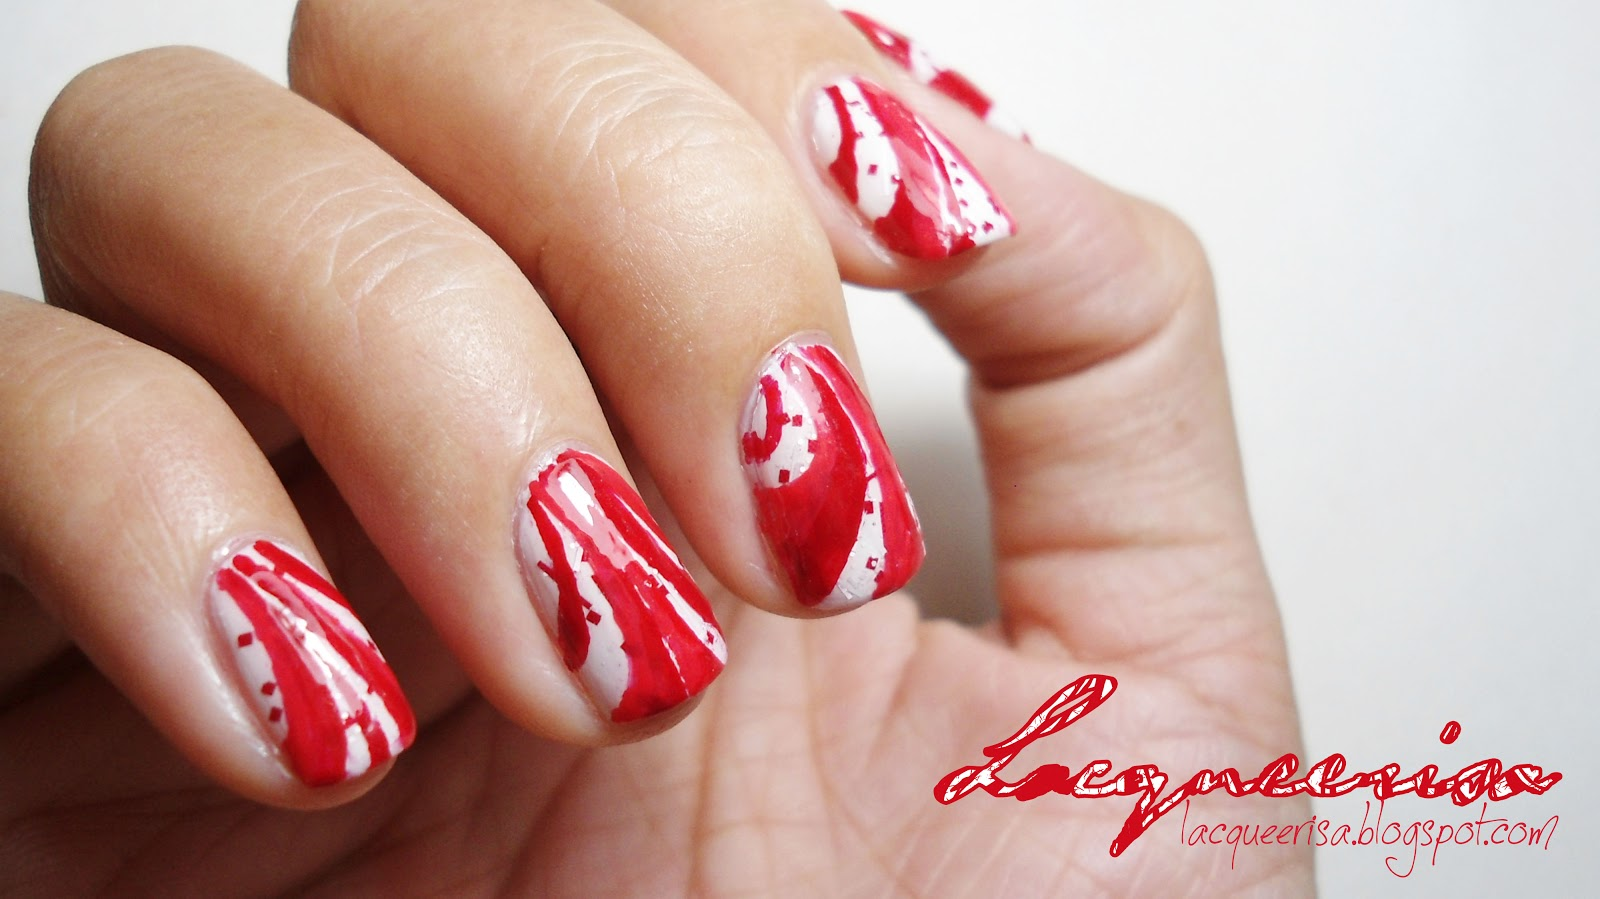 Lacqueerisa: Peppermint Candy Canes